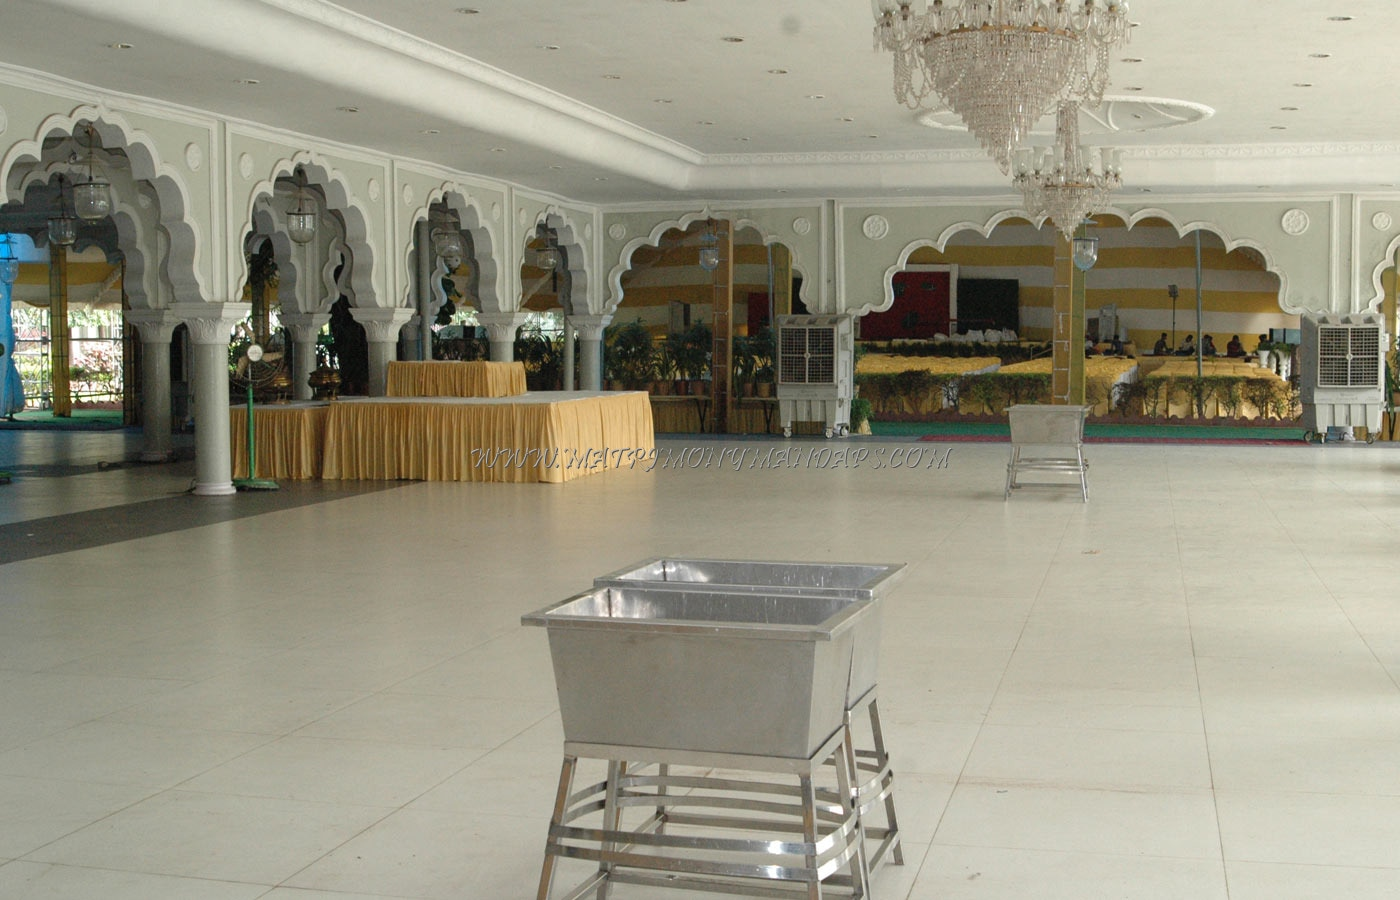 Find the availability of the Paigah Pale Castle in Begumpet, Hyderabad and avail special offers